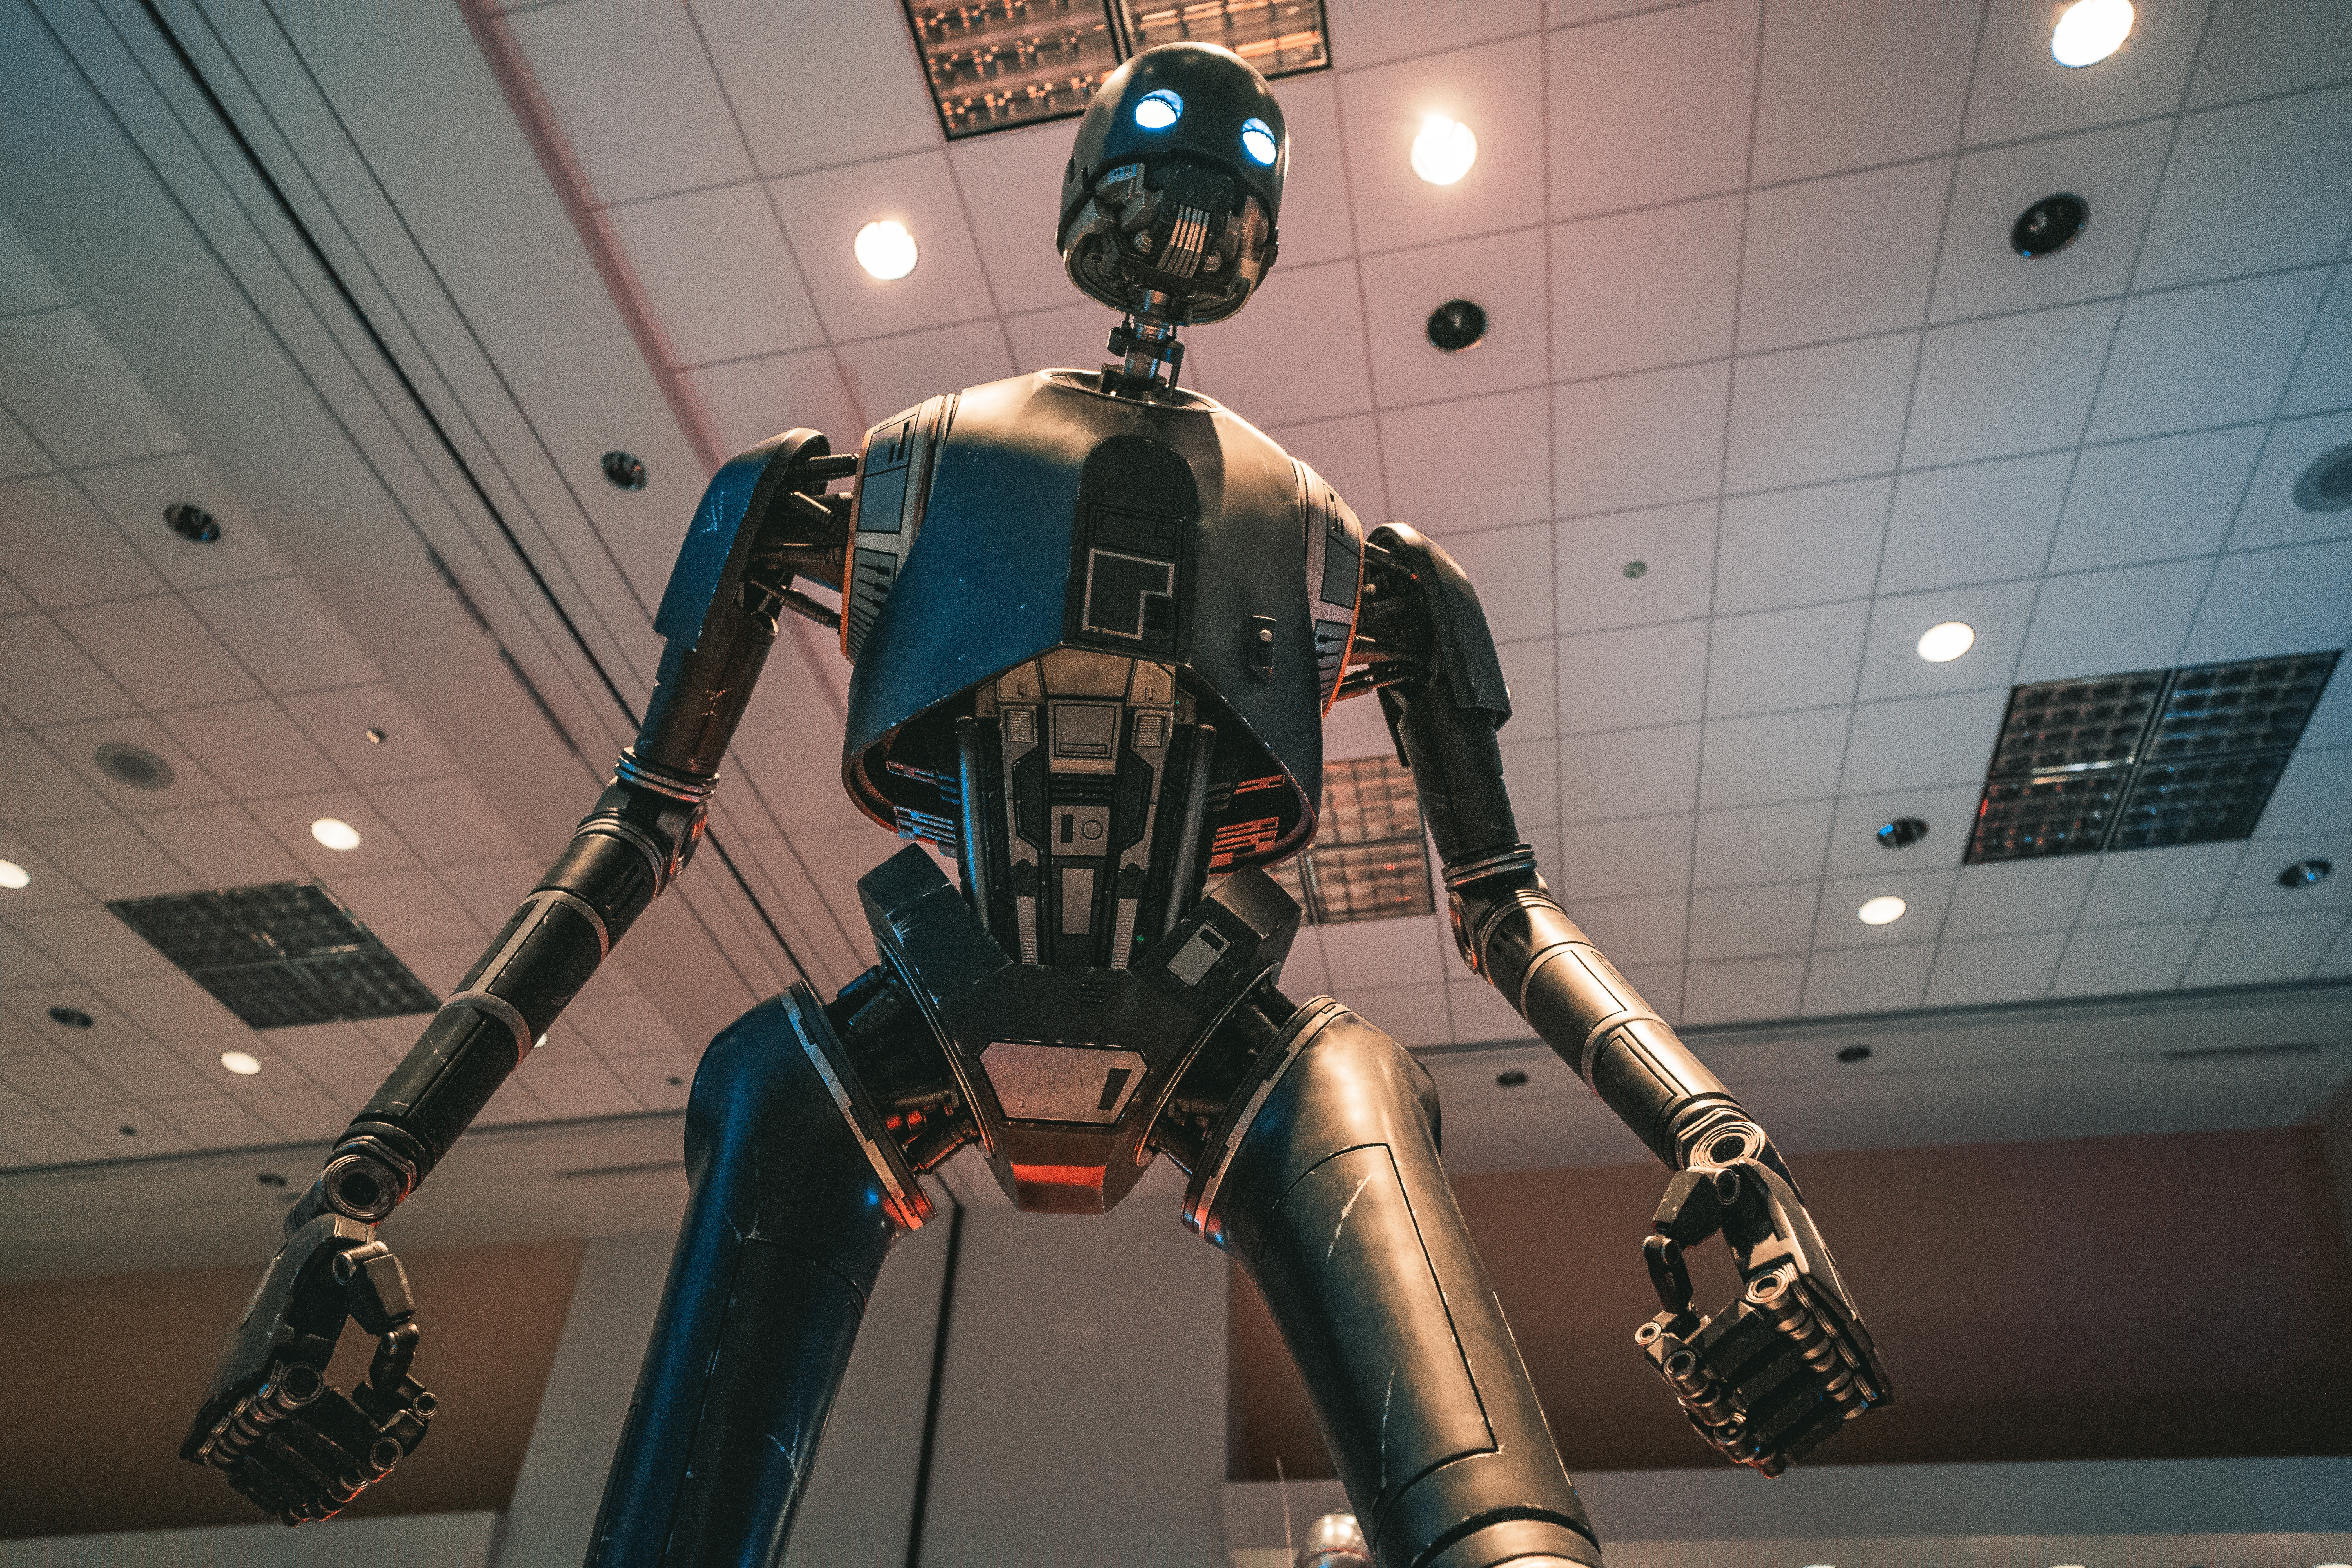 our lives with robots as gods sirius xm